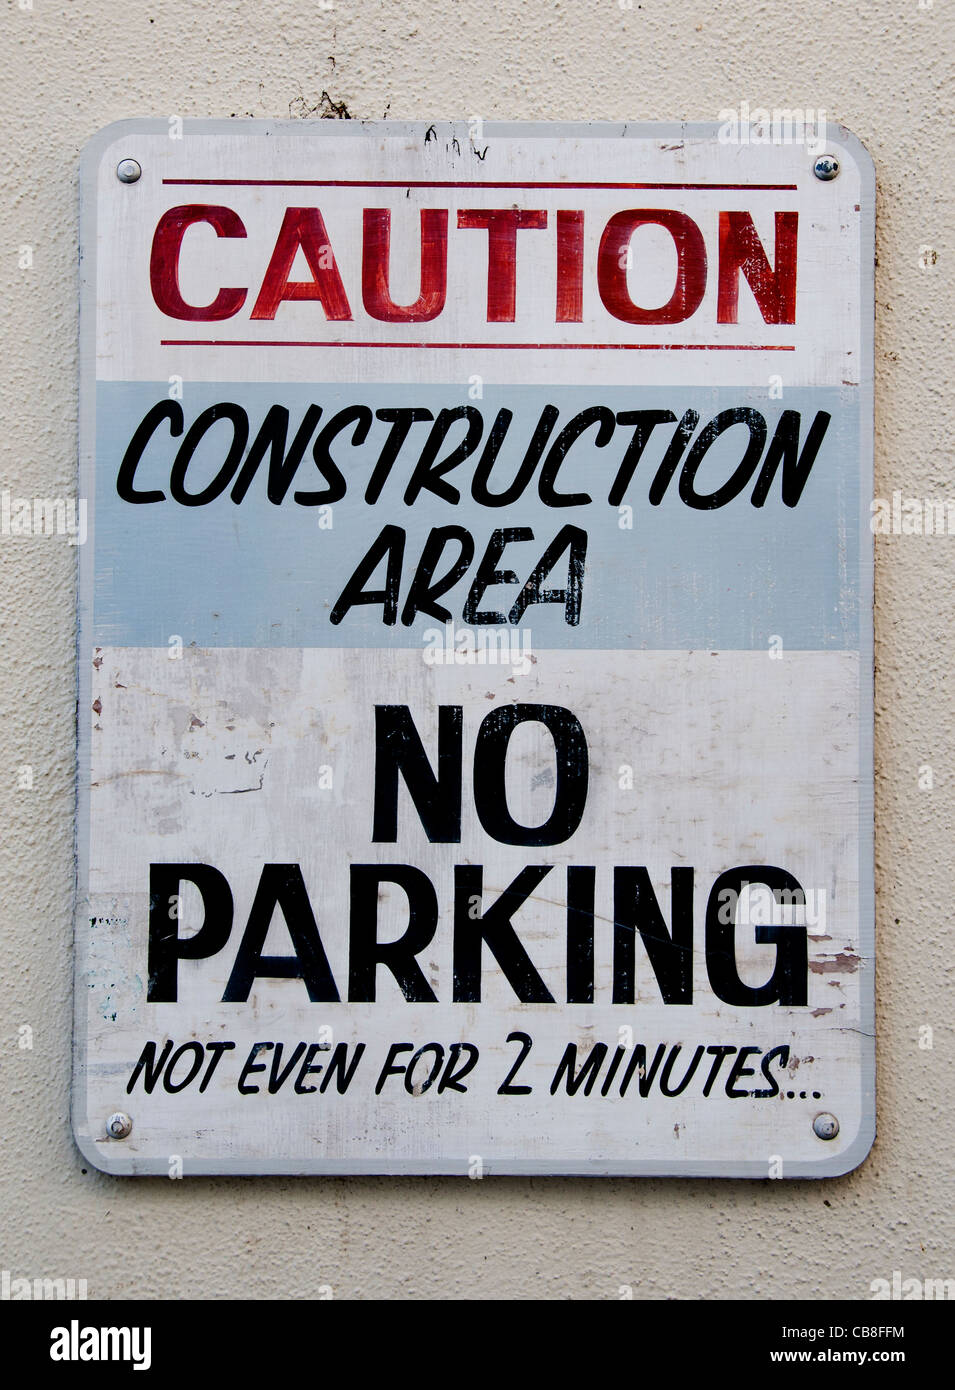 Caution Construction Area No Parking not even for 2 minutes Santa Barbara California United States - Stock Image